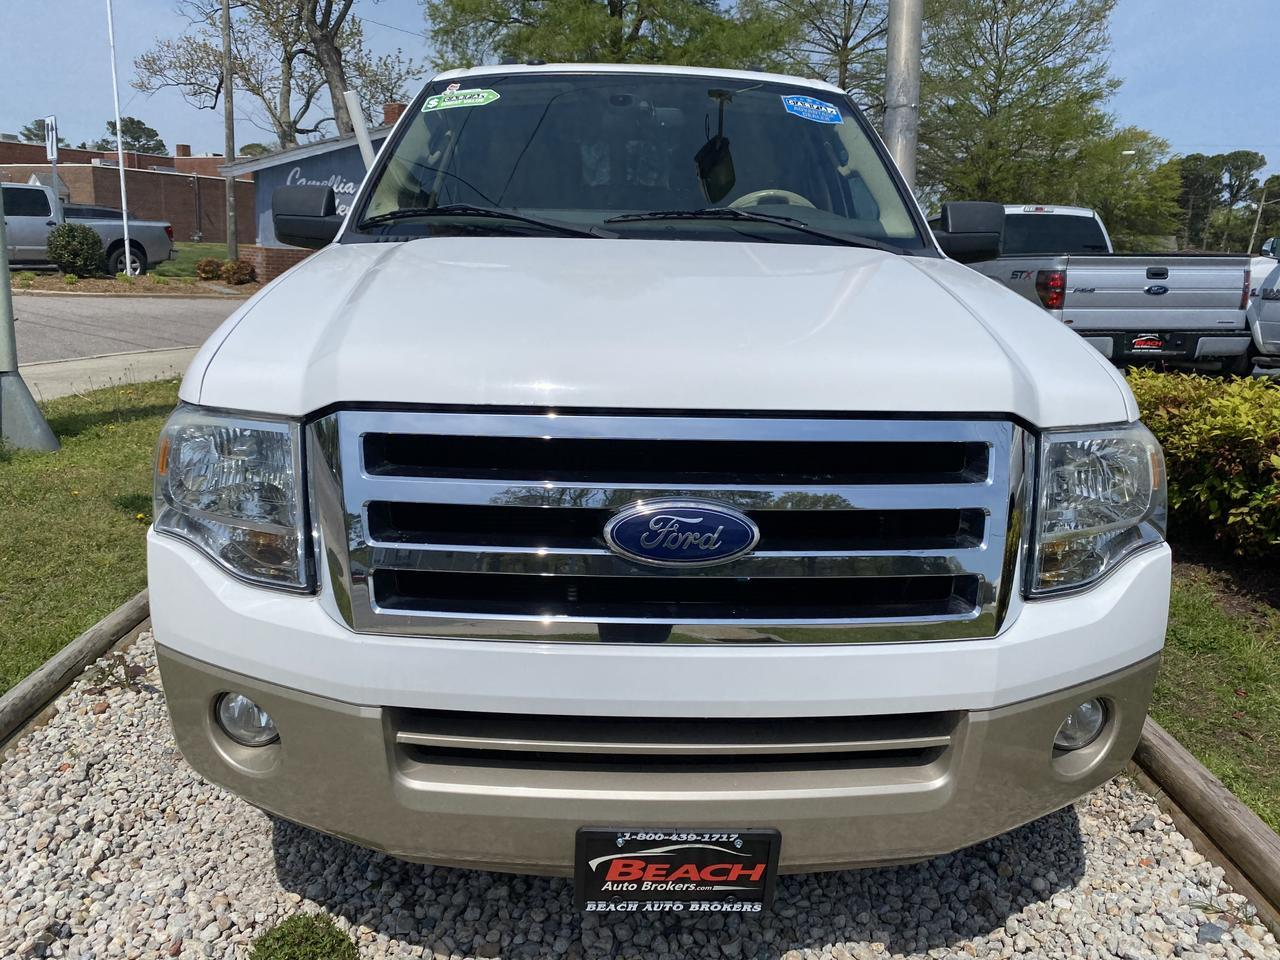 2010 FORD EXPEDITION EDDIE BAUER, WARRANTY, LEATHER, 3RD ROW, AUX/USB PORT, PARKING SENSORS, CLEAN CARFAX! Norfolk VA